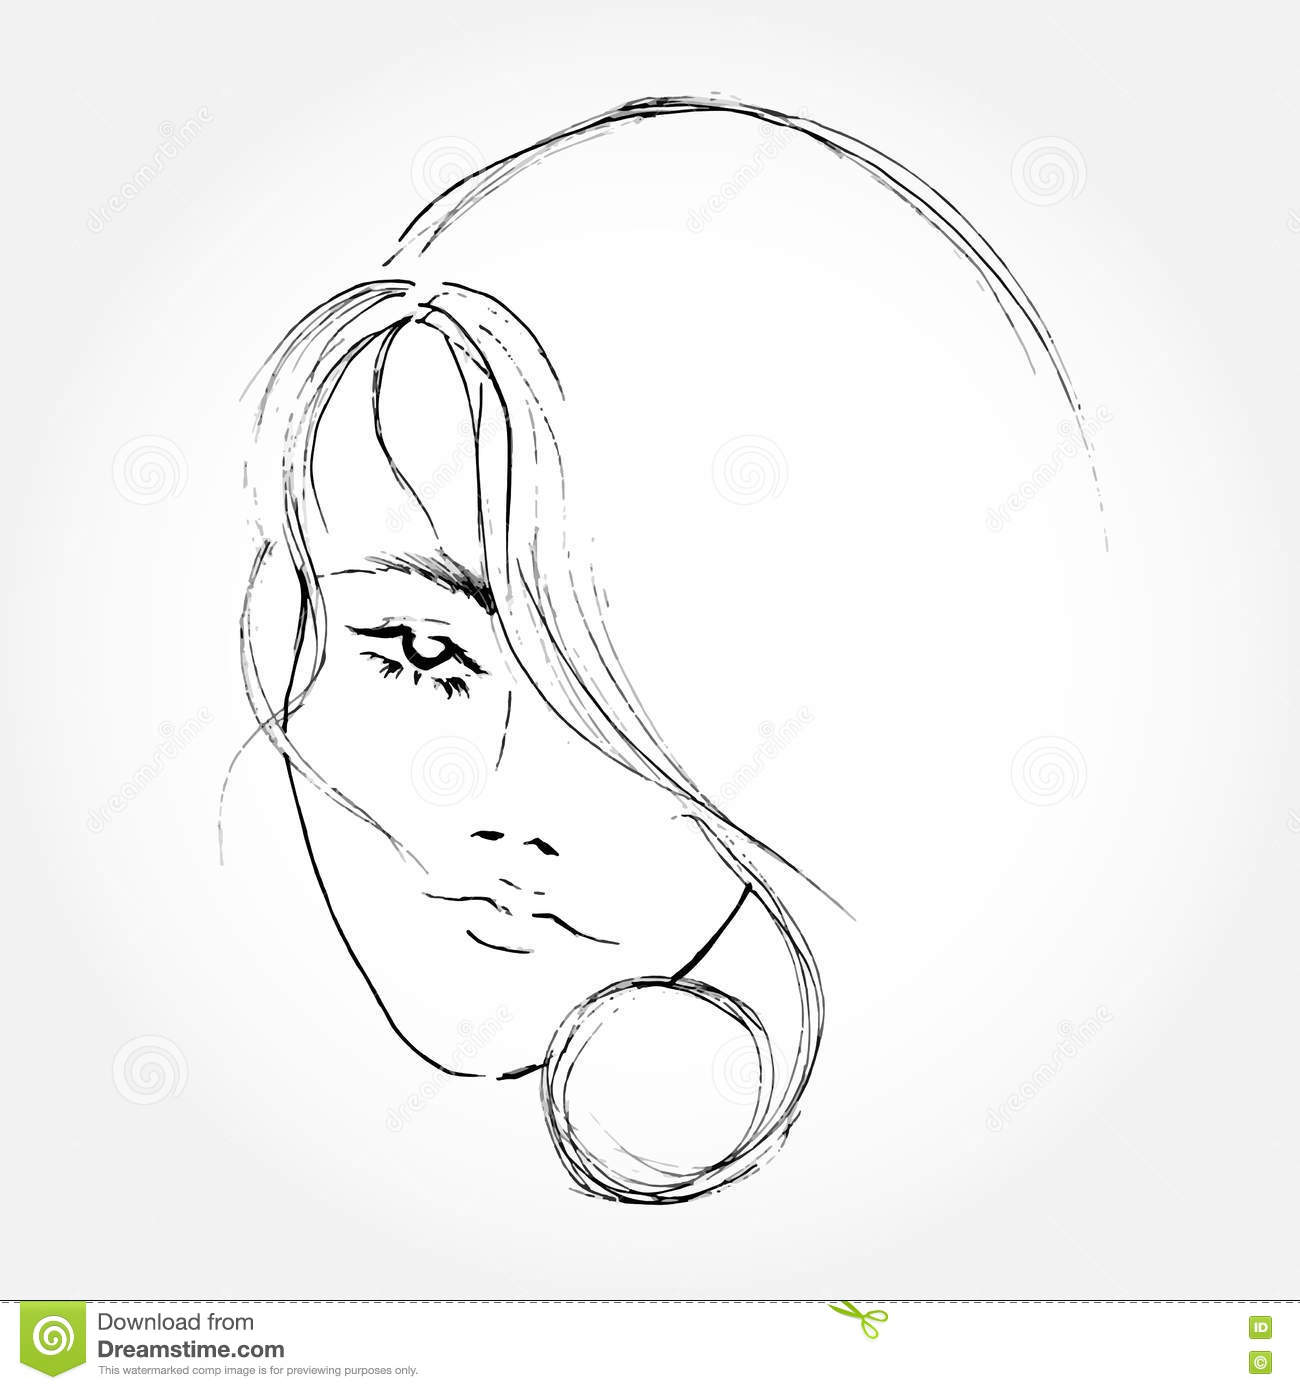 Abstract Face Line Drawing : Abstract women face line art drawing stock vector image